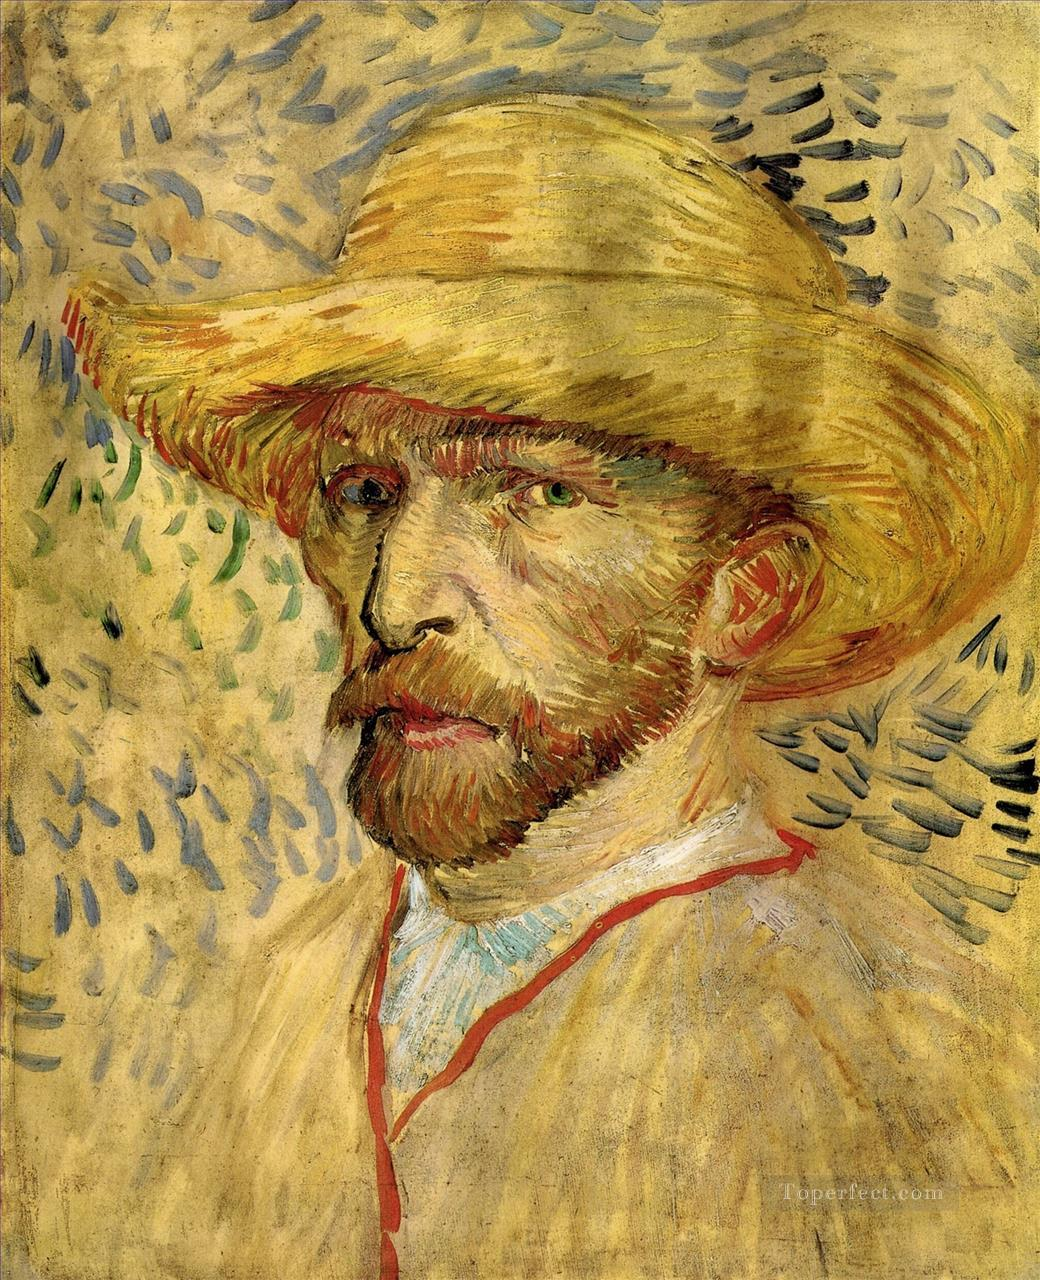 a look at the online exhibitions van goghs van goghs The more work i put into the vincent van gogh gallery van gogh in exhibitions: 2000-2019 examining what is humane and how one should look at the world.